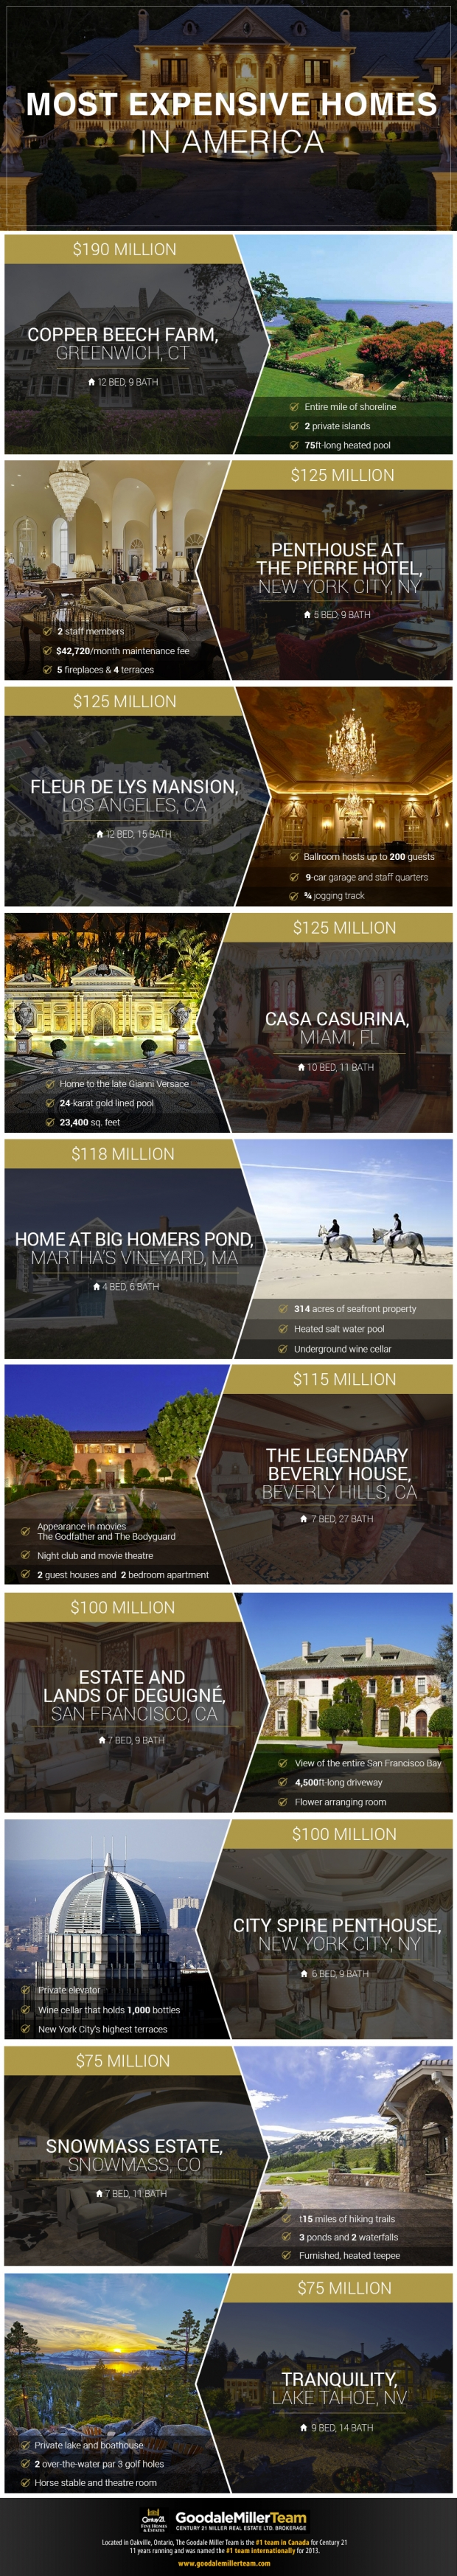 Most-Expensive-Homes-USA-1000